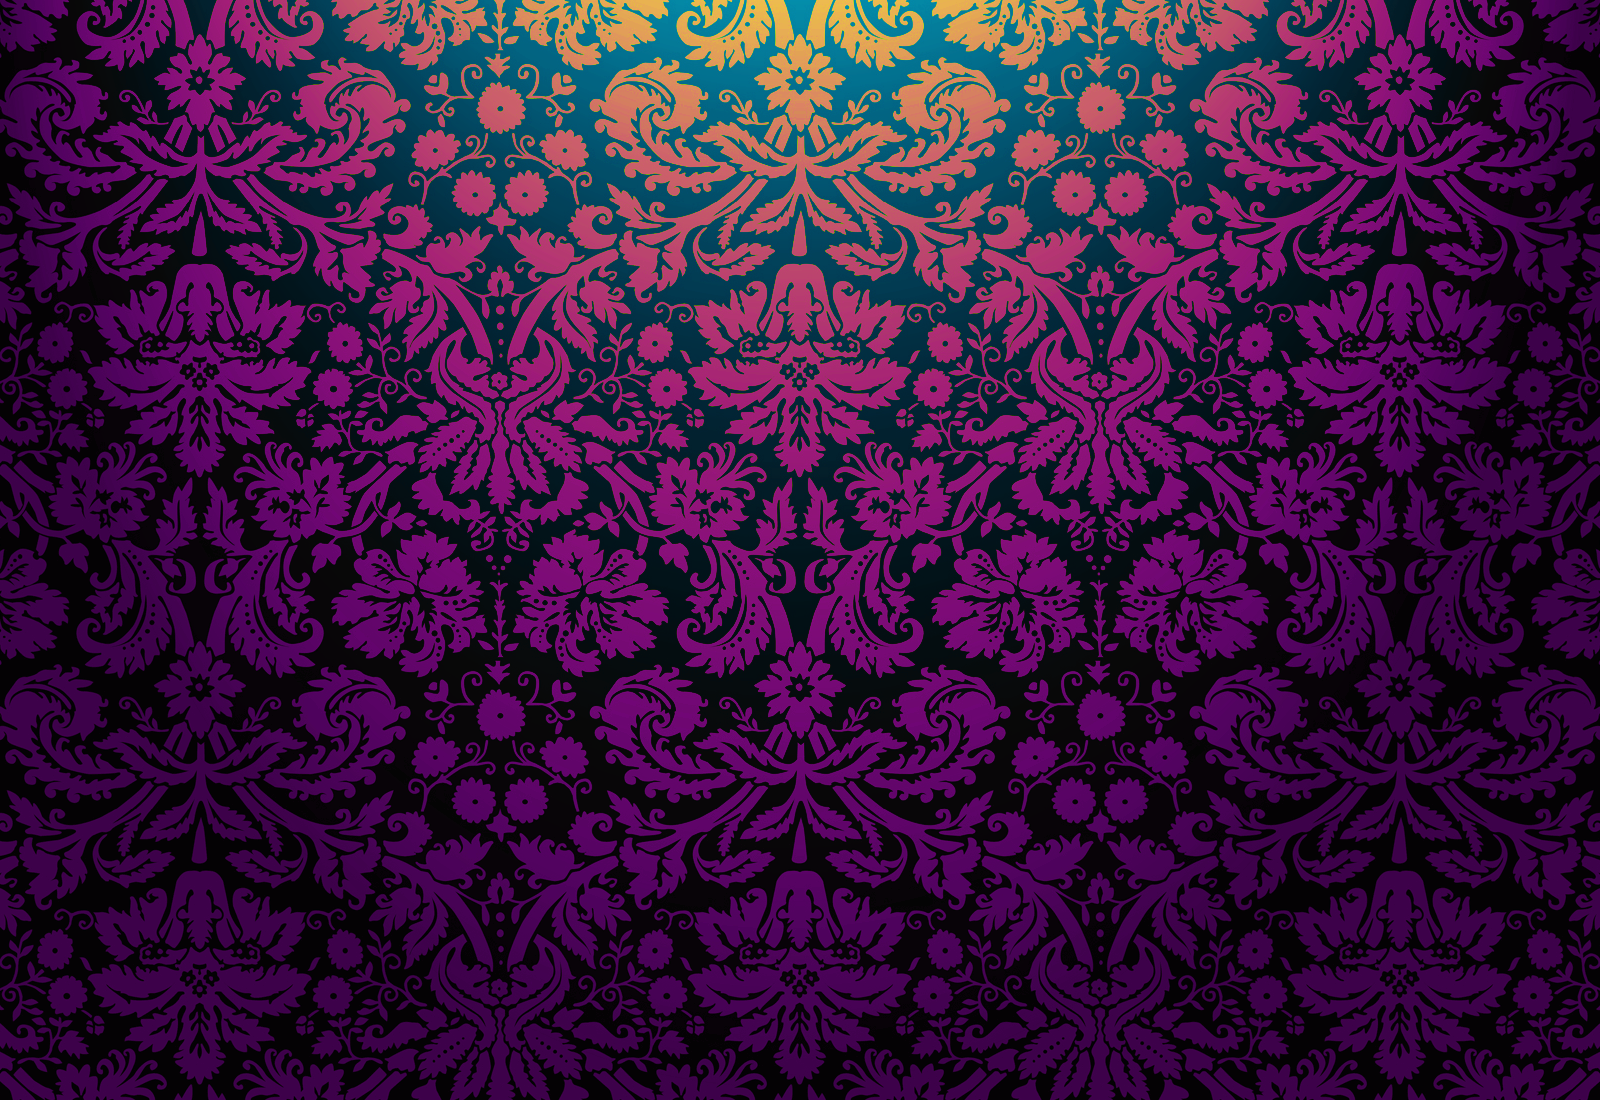 Floral damask 2 by mia77 on deviantart Gothic background